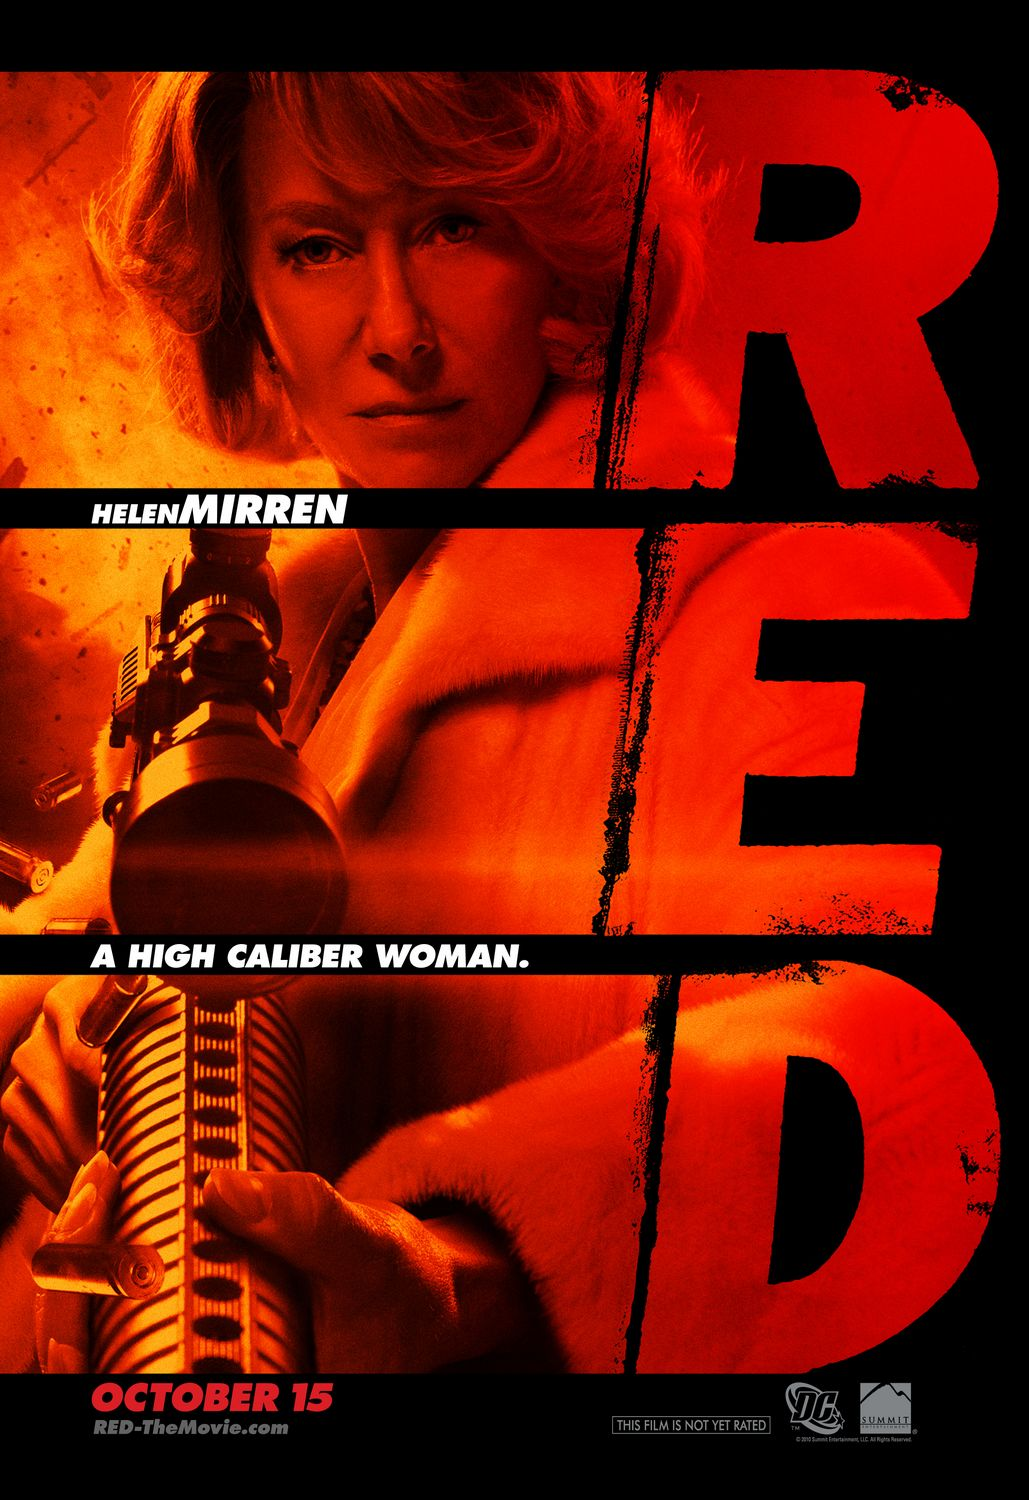 Poster Red Red Gets Another Poster This One Spotlighting Helen Mirren